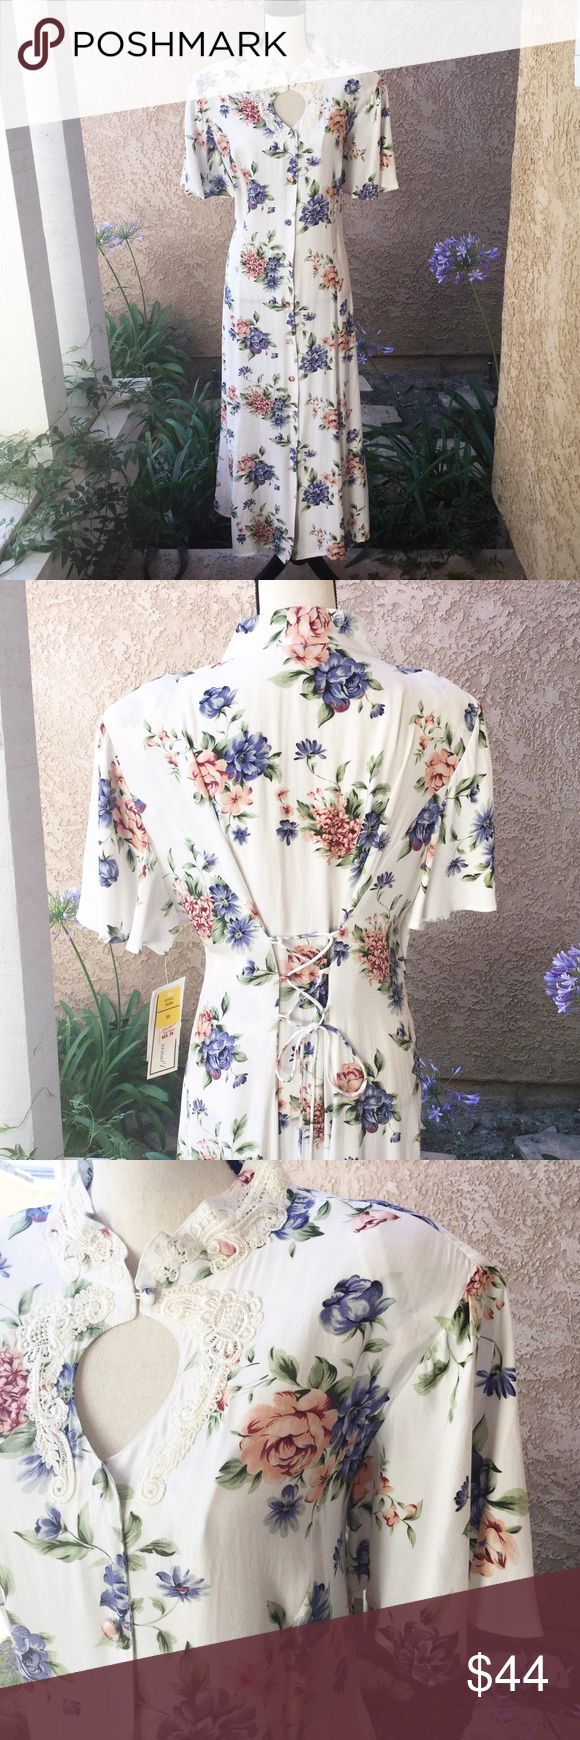 """Vintage 80's 90's floral maxi dress button down 20 Buttons down the front. Keyhole design at the top, another button and lace around the collar. The back adjusts with ties, corset design. Flutter, bell sleeves. Still includes the tags. I estimate this is from the late 80's to early 90's. DJI brand. Approx measurements laying flat are.....  ▪️Chest, straight across under the arms-21"""" ▪️Length-52"""" ▪️Waist-20""""  🍃🍃🍃🍃🍃🍃🍃🍃🍃🍃  ▪️ Fabric-100% rayon ▪️ Condition-Vintage, still has the new…"""